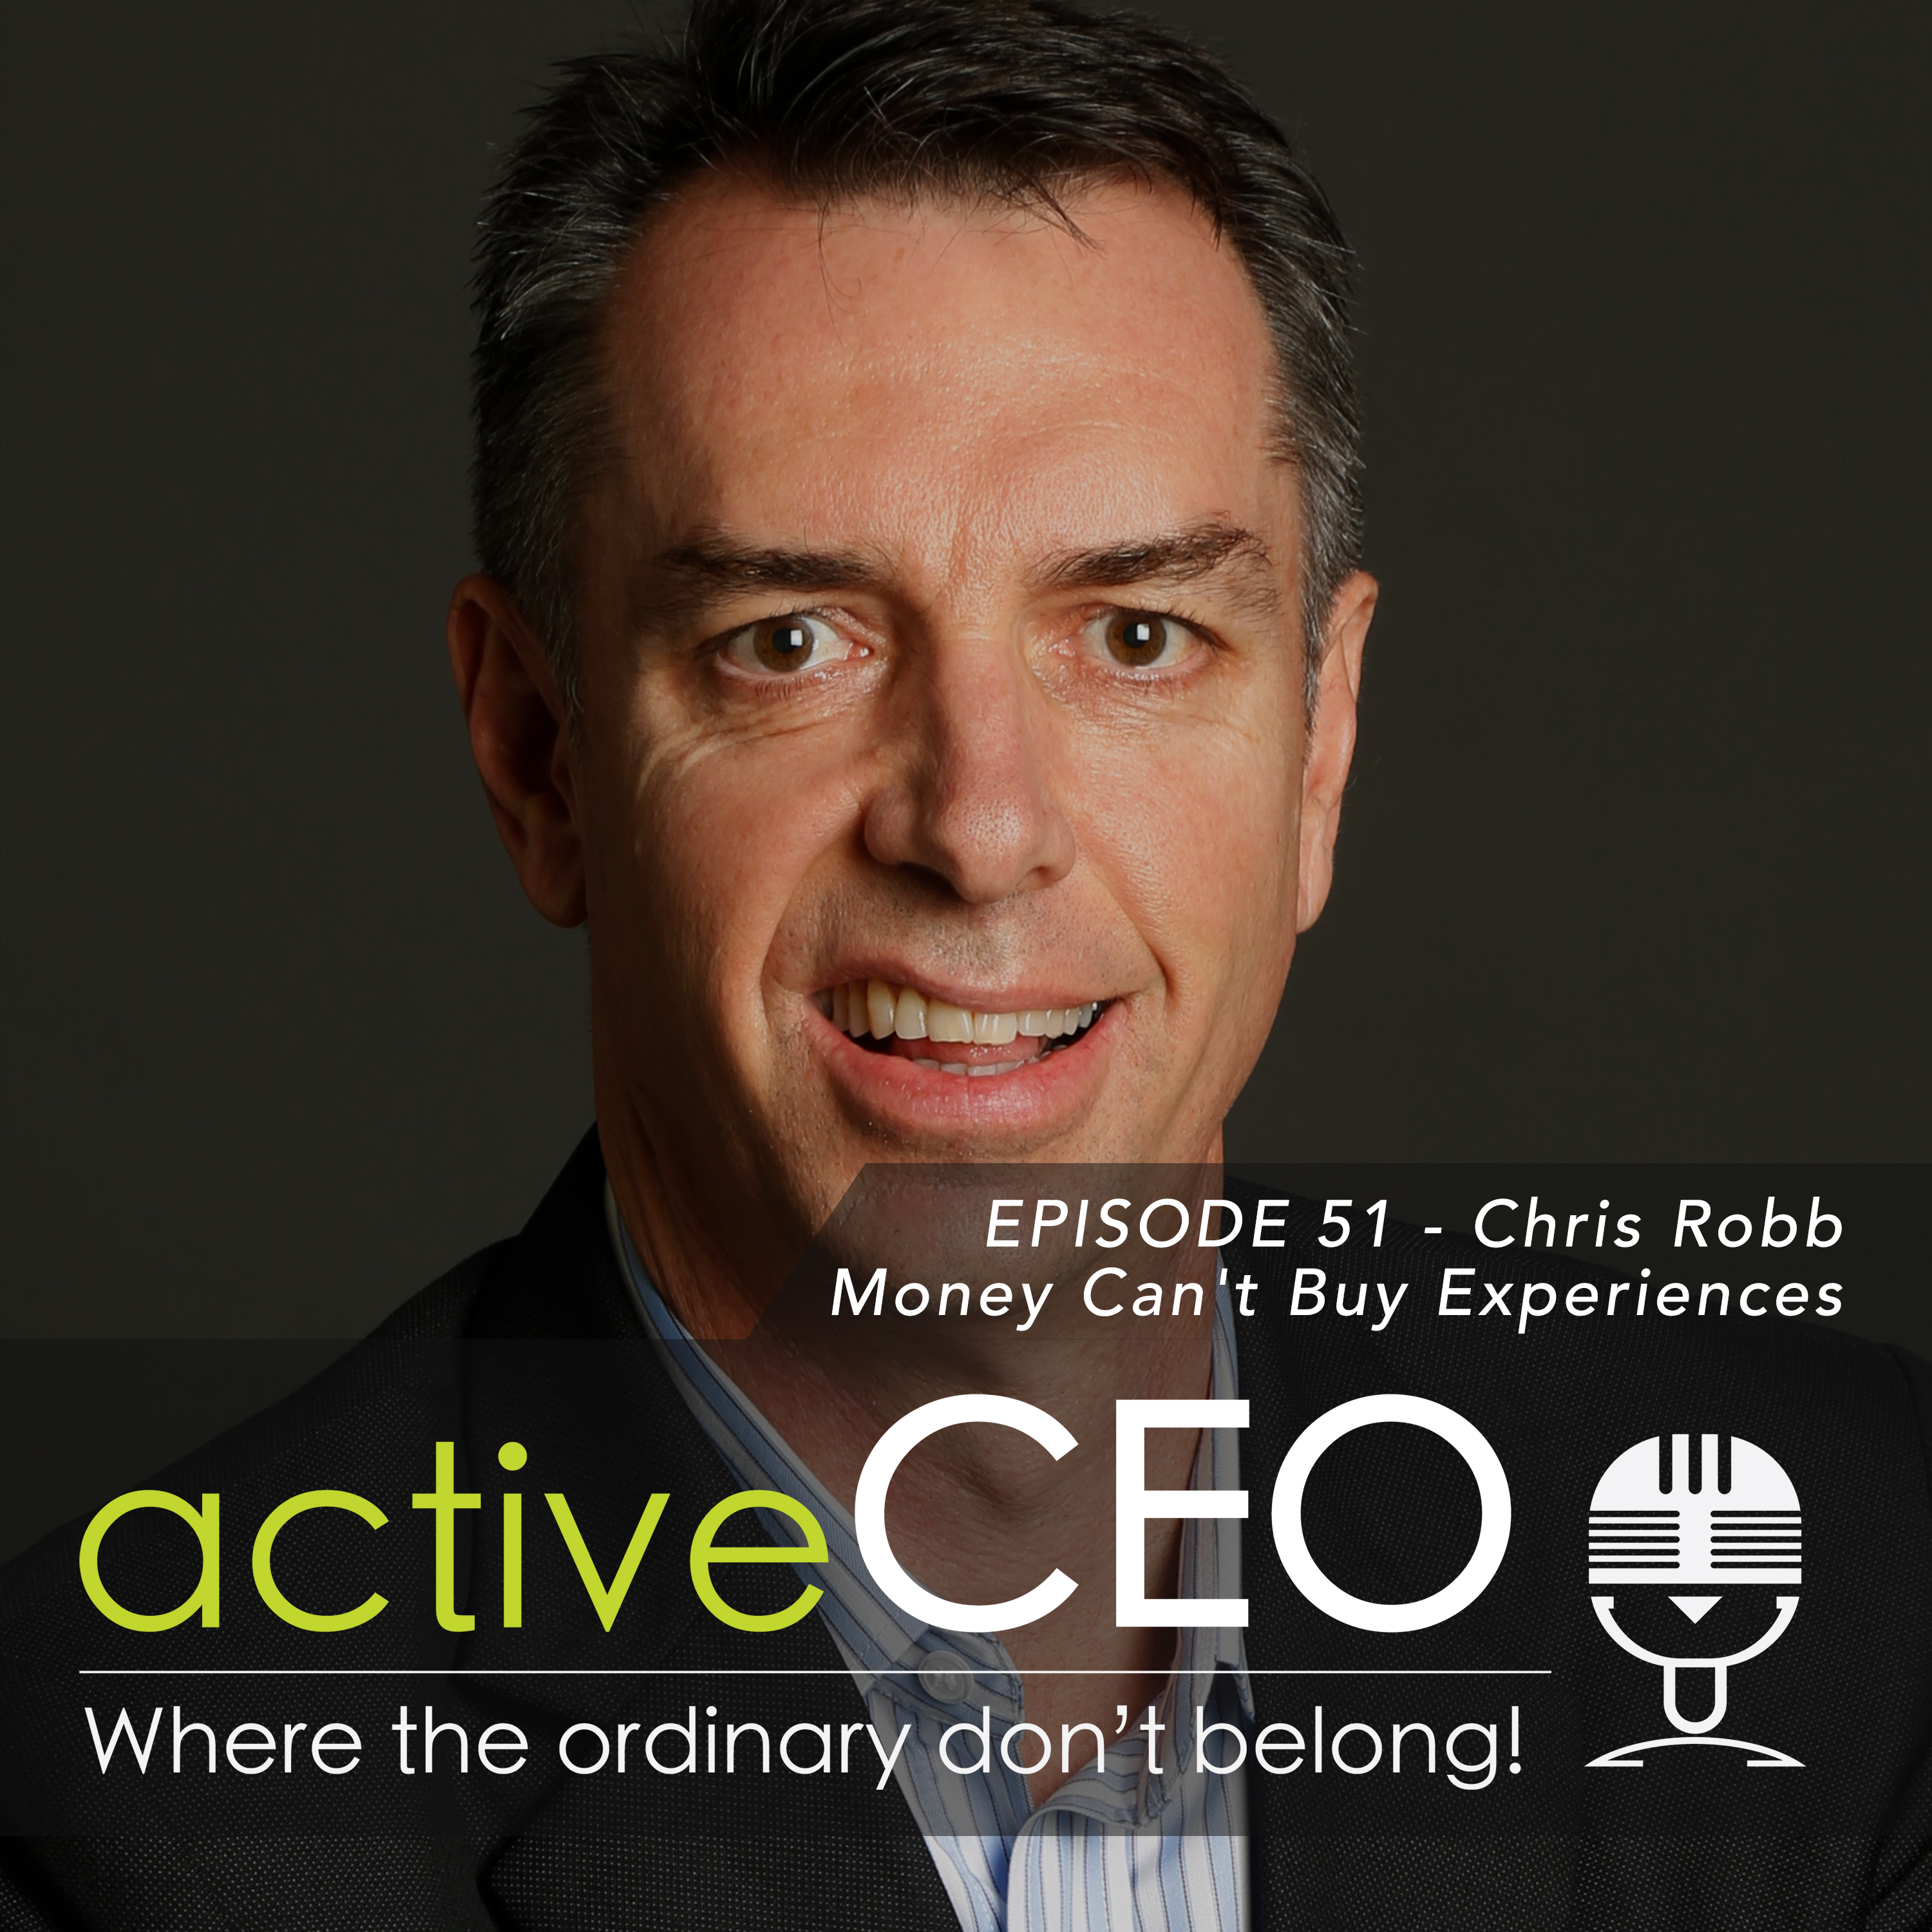 active CEO Podcast Chriss Robb Chris Robb (Mass Participation World) Money Can't Buy Experiences